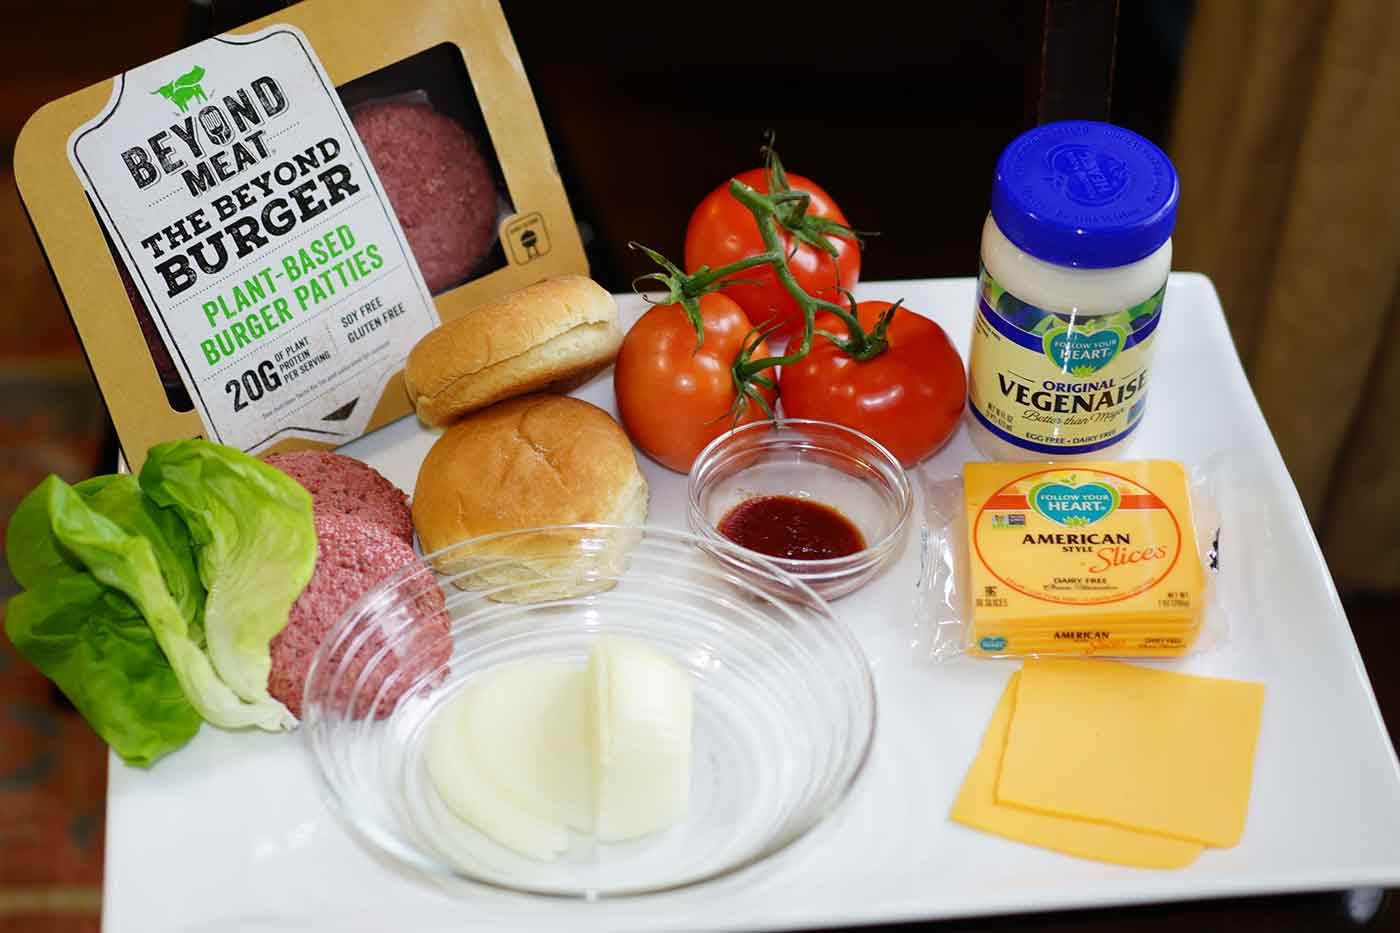 Beyond Burger vegan burger recipe condiments including vegenaise and follow your heart vegan cheese